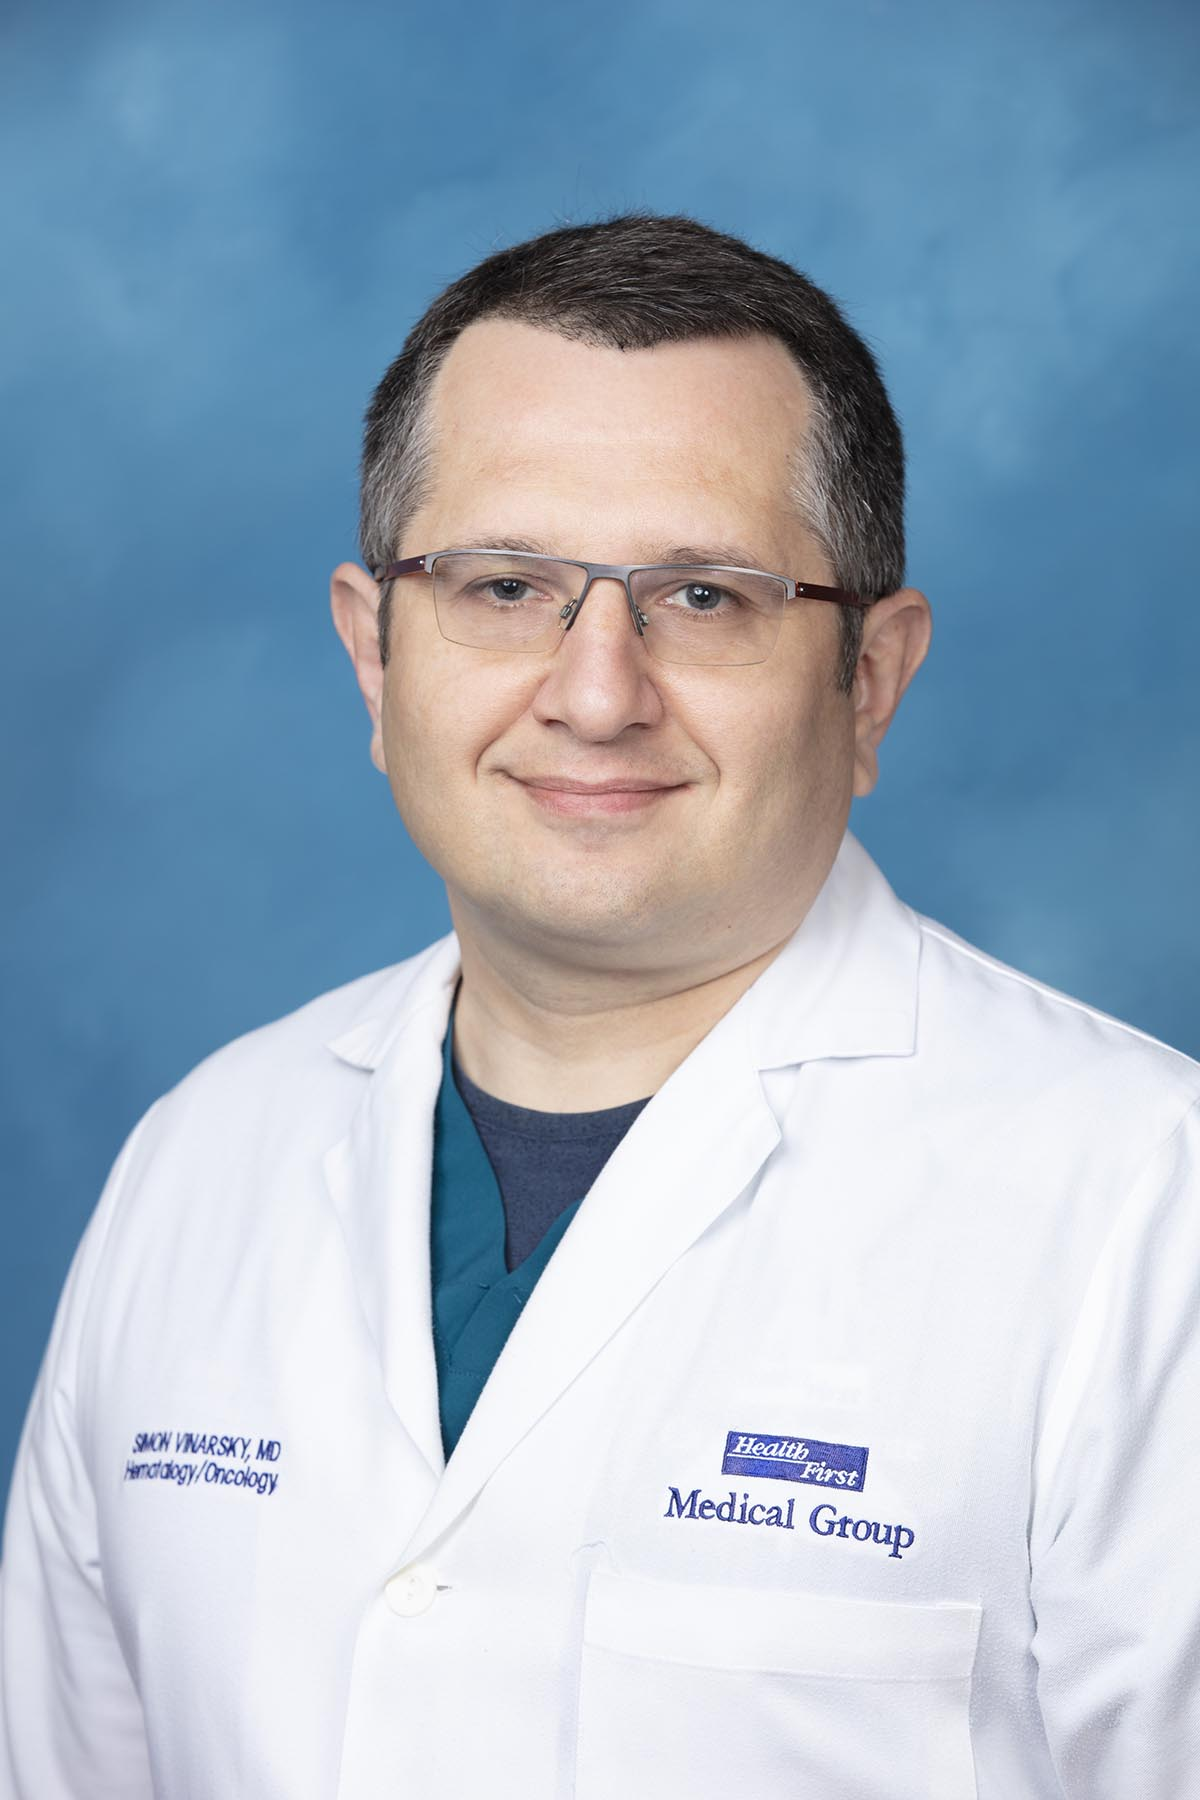 Simon Vinarsky, MD